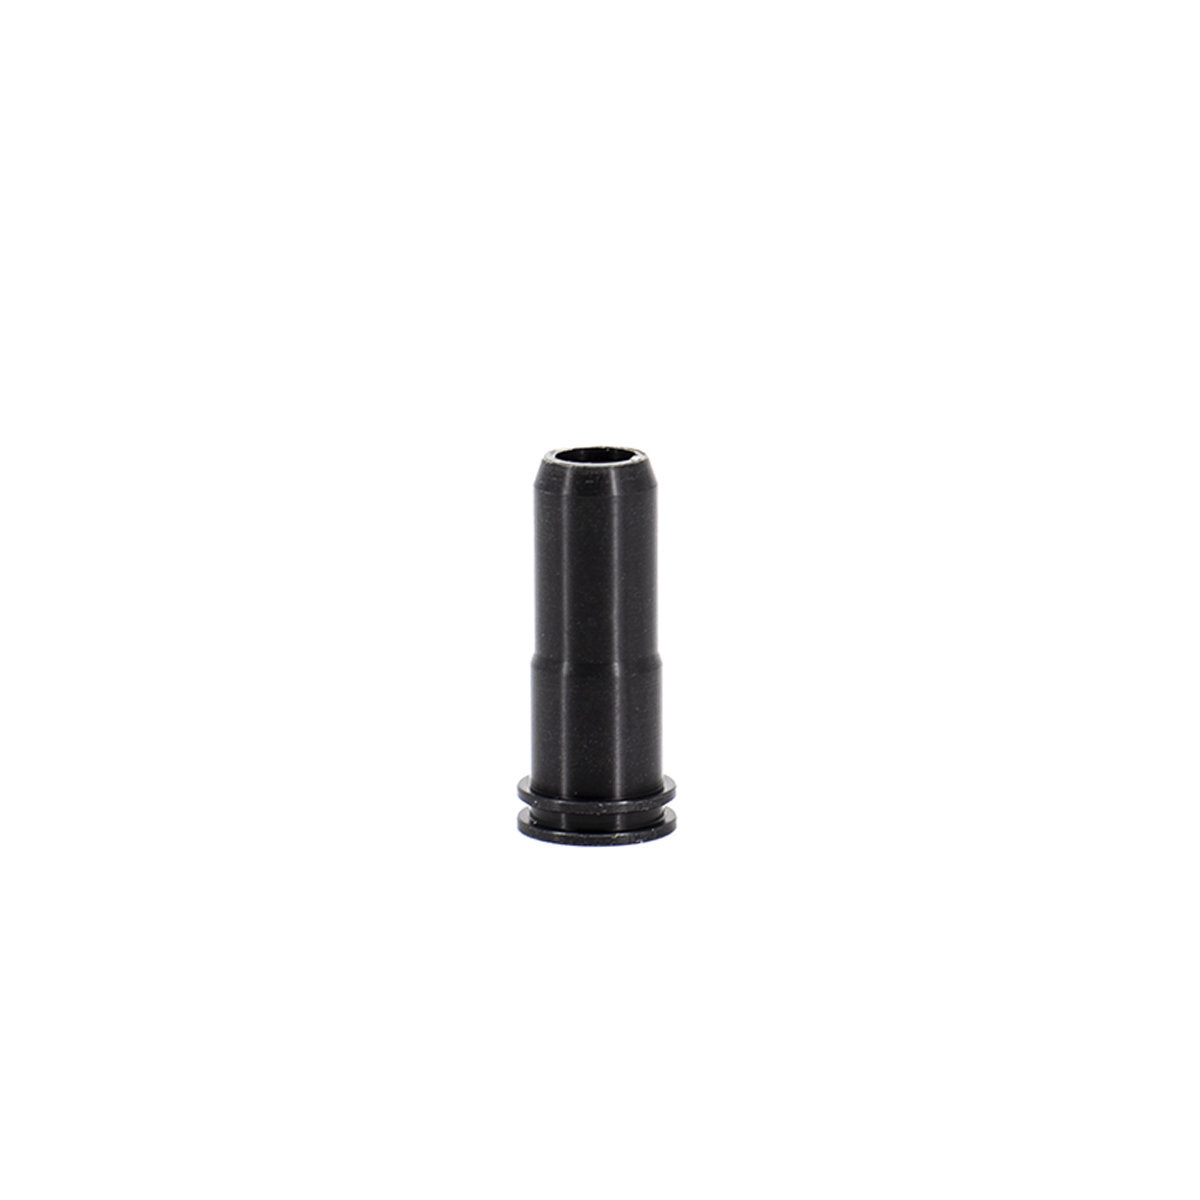 View larger image of Valken Polycarbonate Air Nozzle for M4 Series AEGs